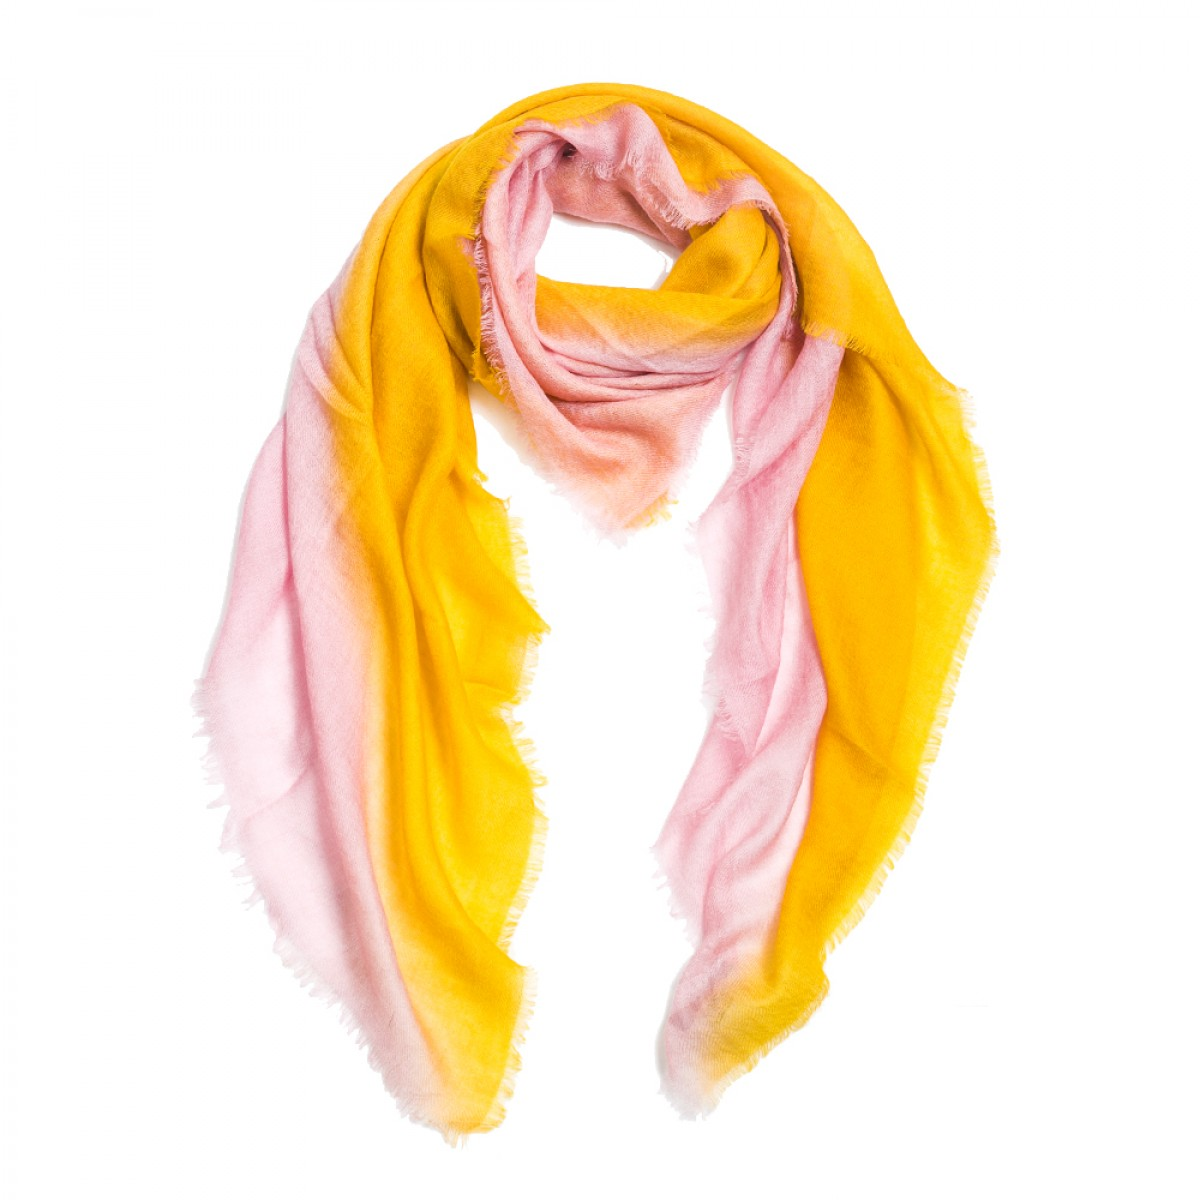 Ombre Pashmina Stole - Bessie Amber Yellow